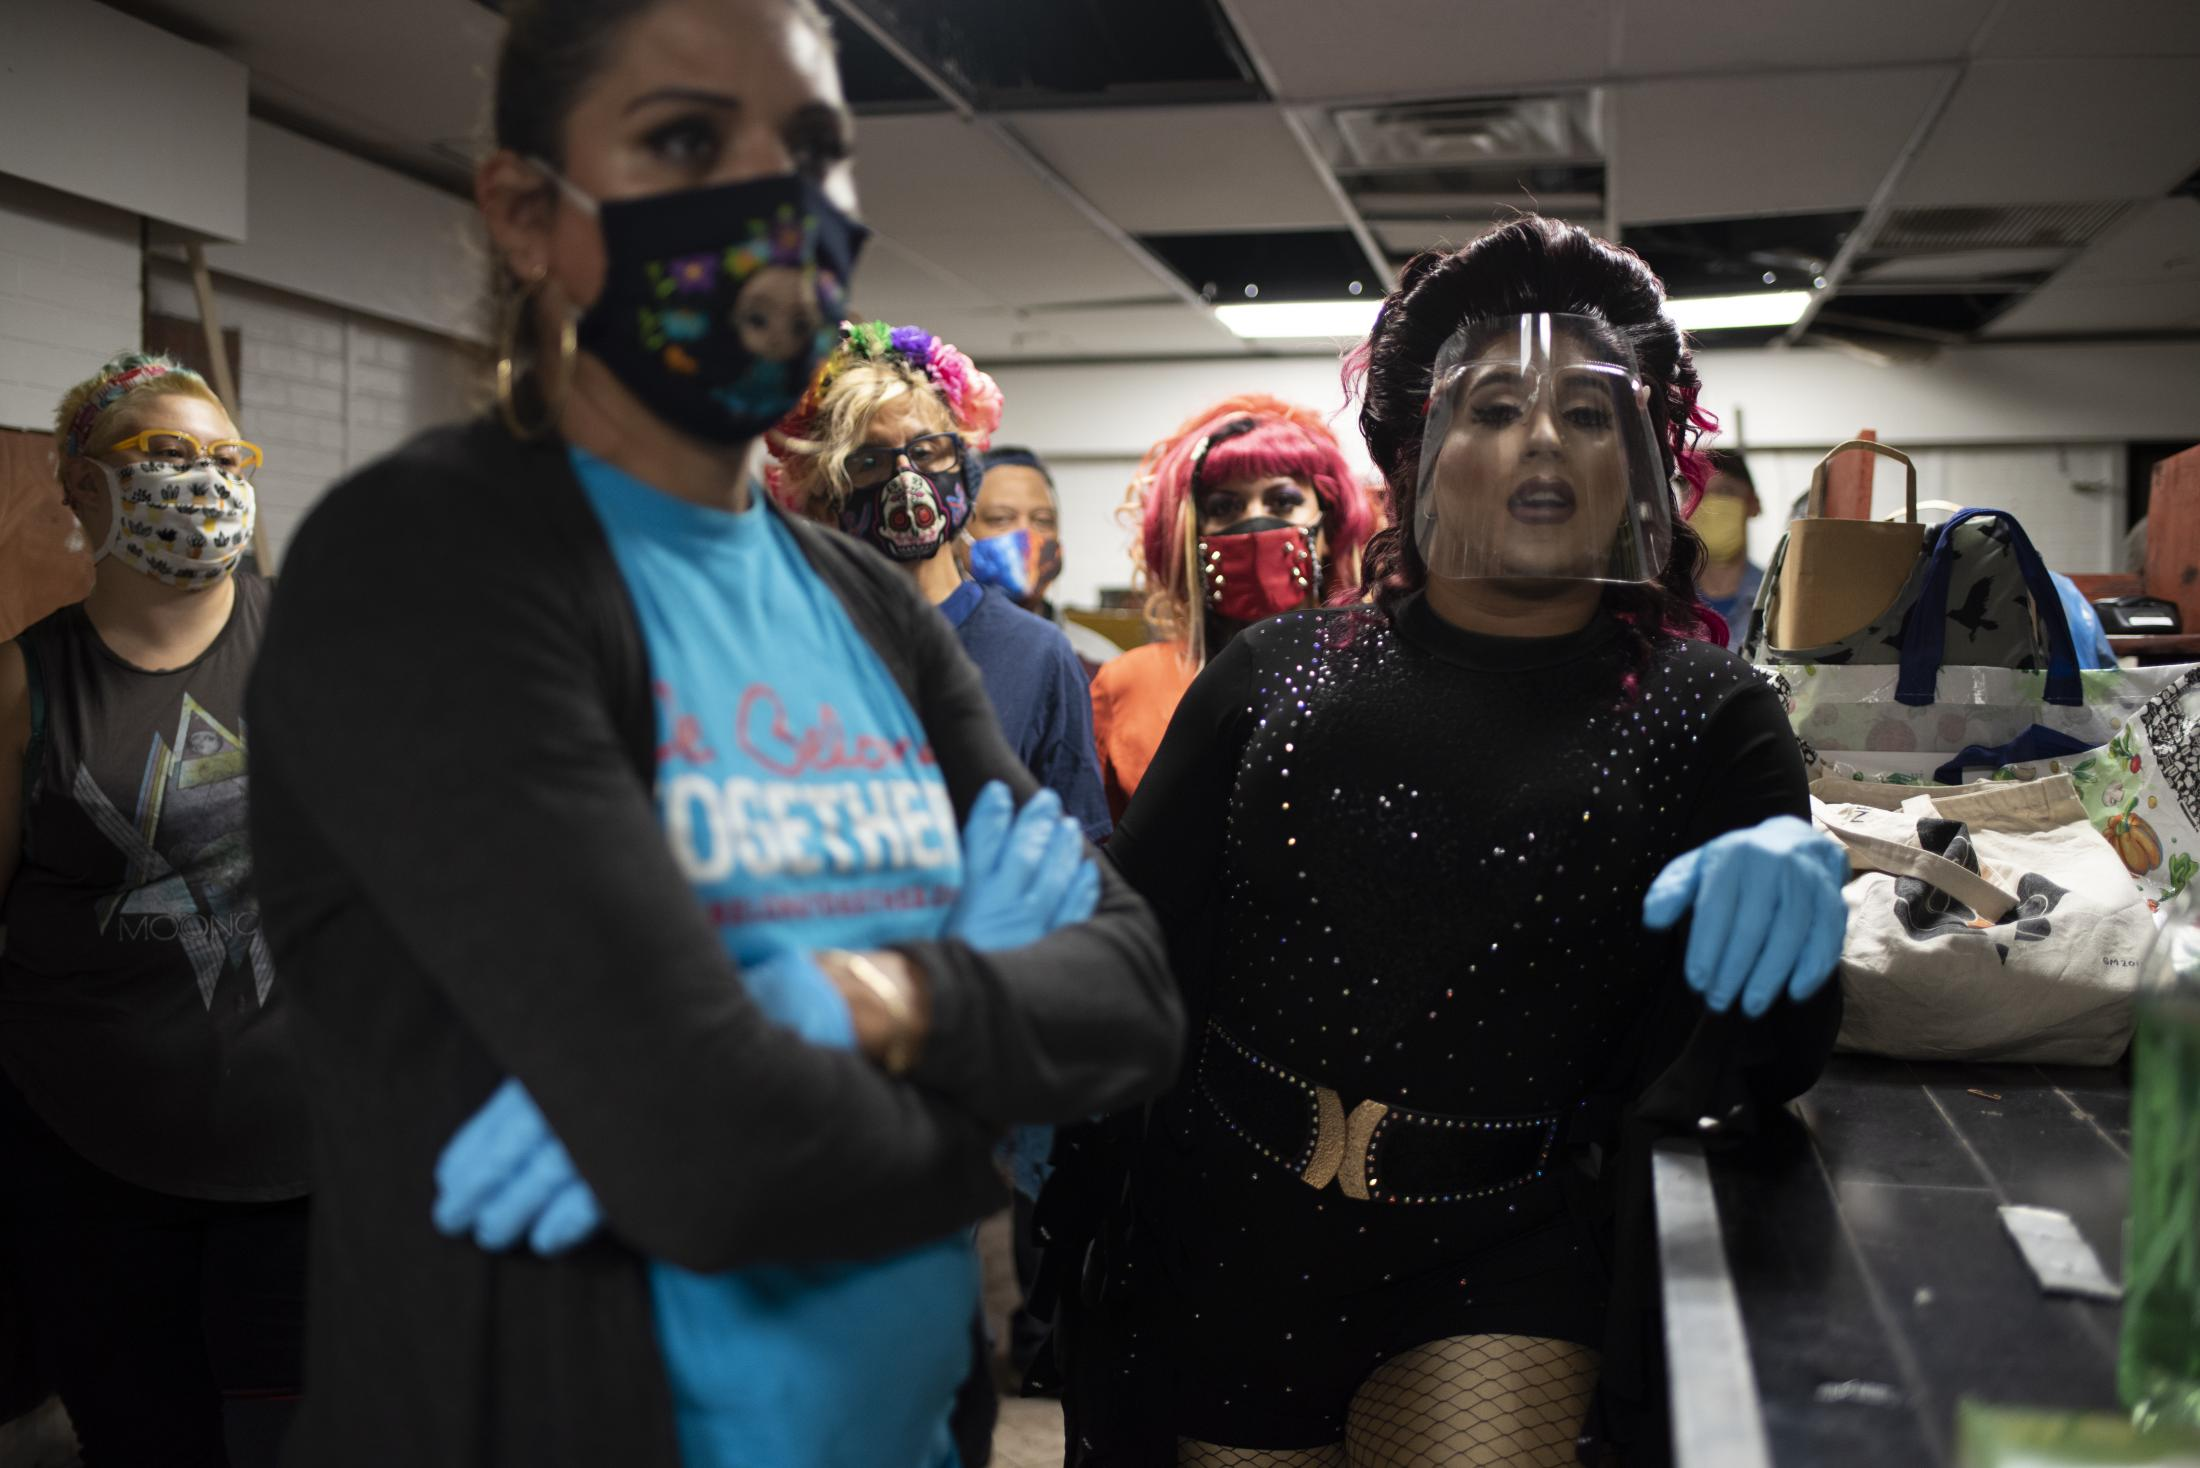 Transgender woman Joselyn Mendoza (in blue) and other volunteers of the L.G.B.T.Q food pantry Love Wins prepare to deliver groceries a vulnerable people in Jackson Heights, Queens in response to the Covid pandemic.